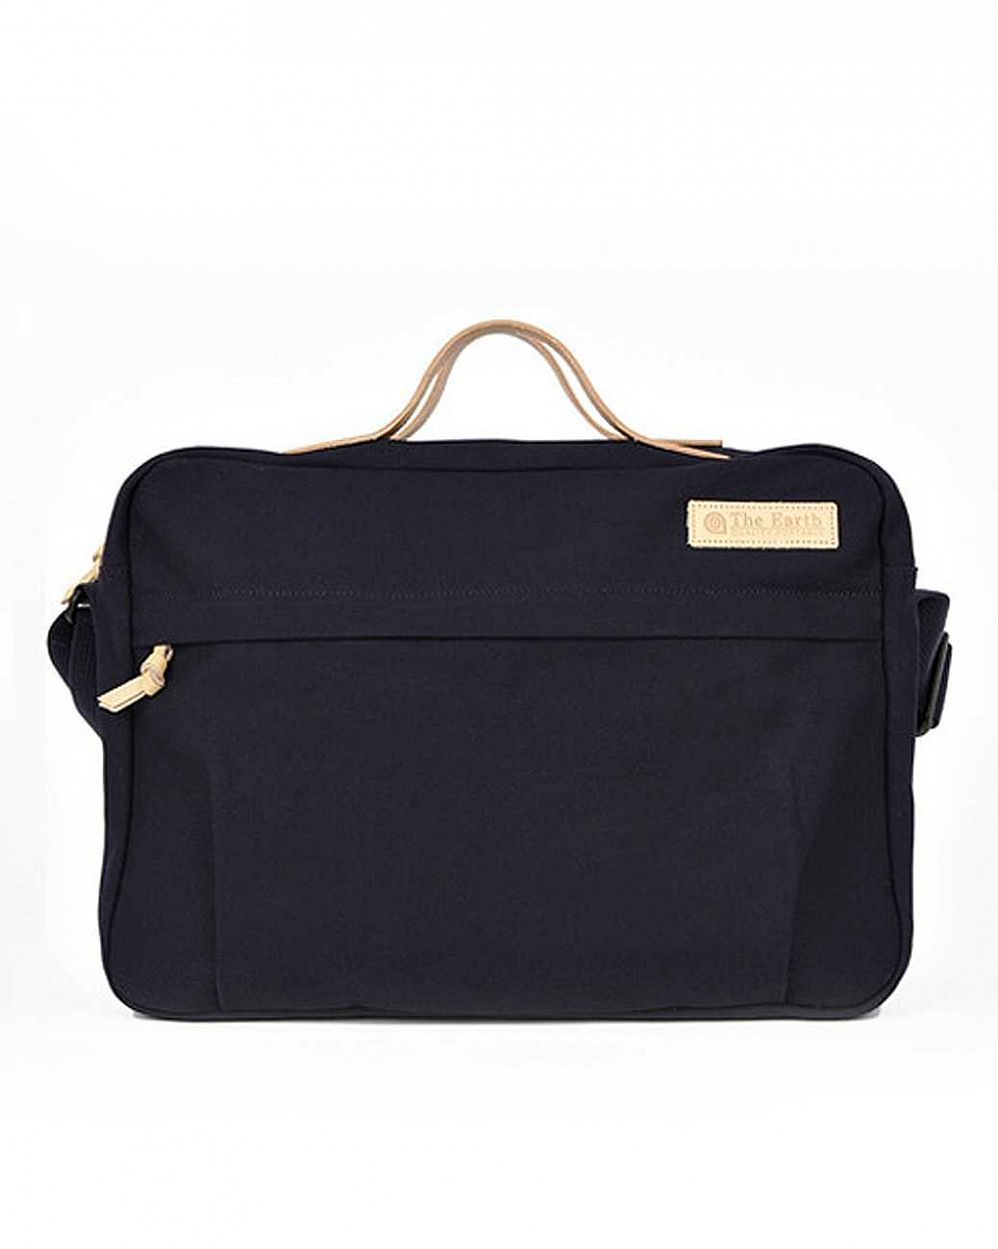 Сумка The earth Company Canvas Cross Bag navy отзывы